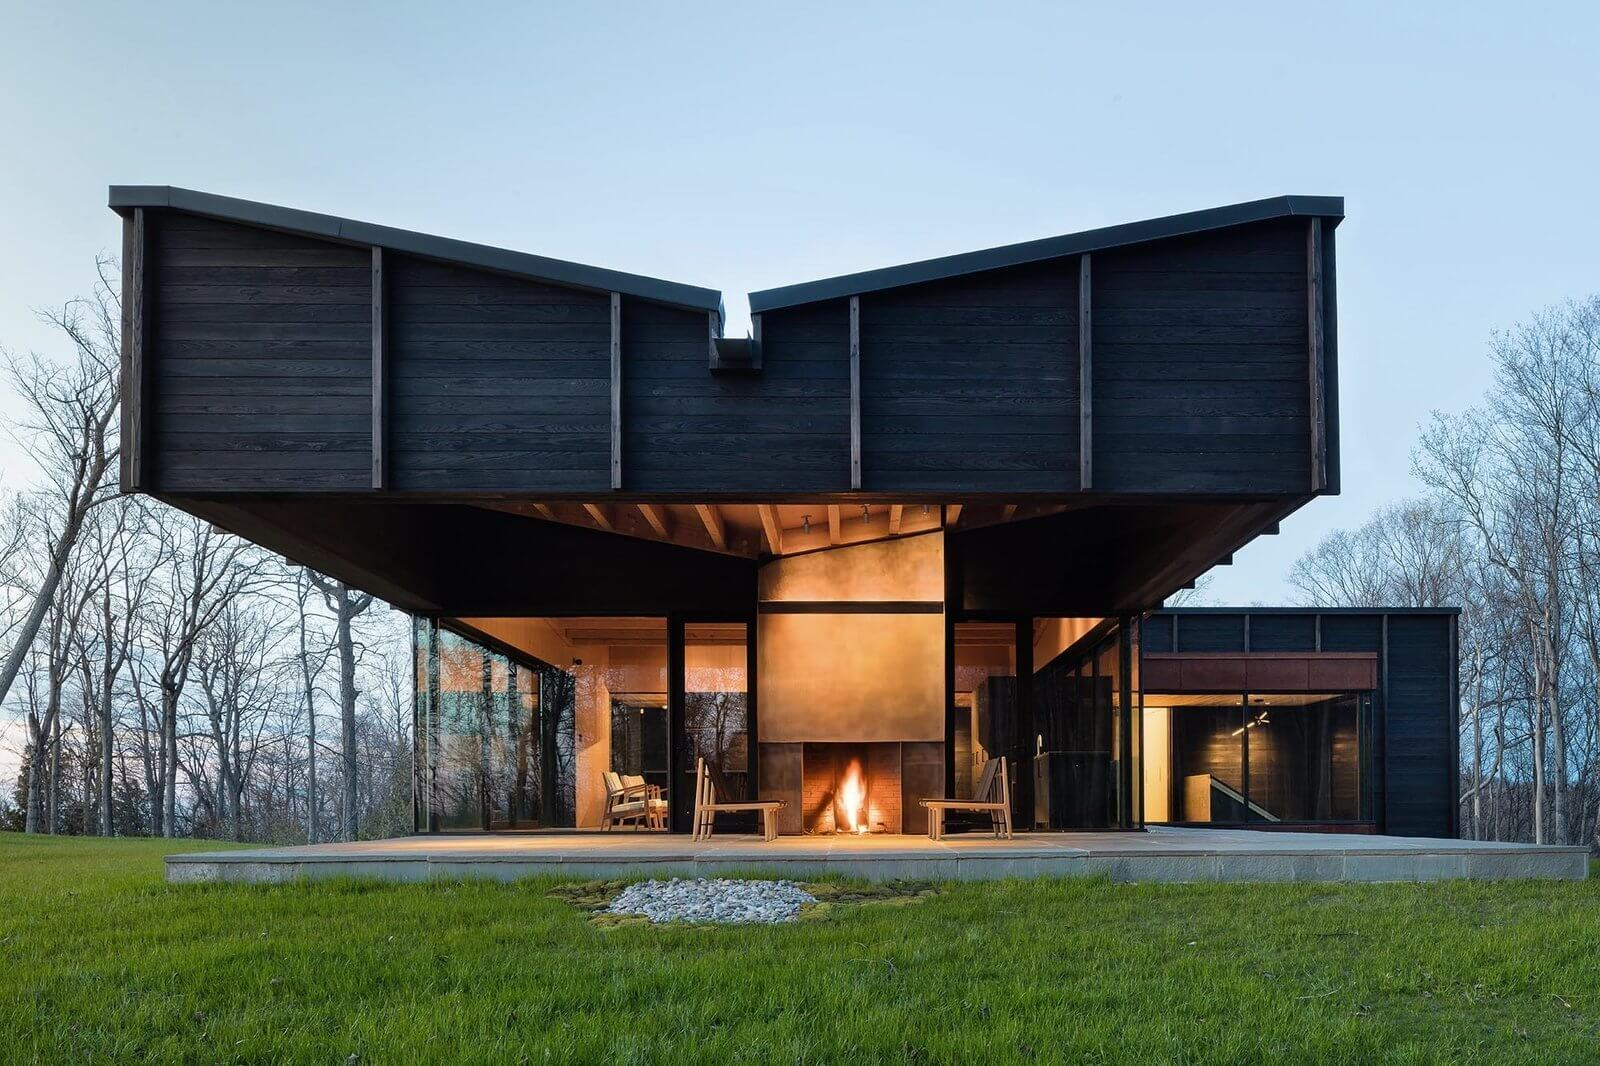 AN entire house with shou sugi ban wood